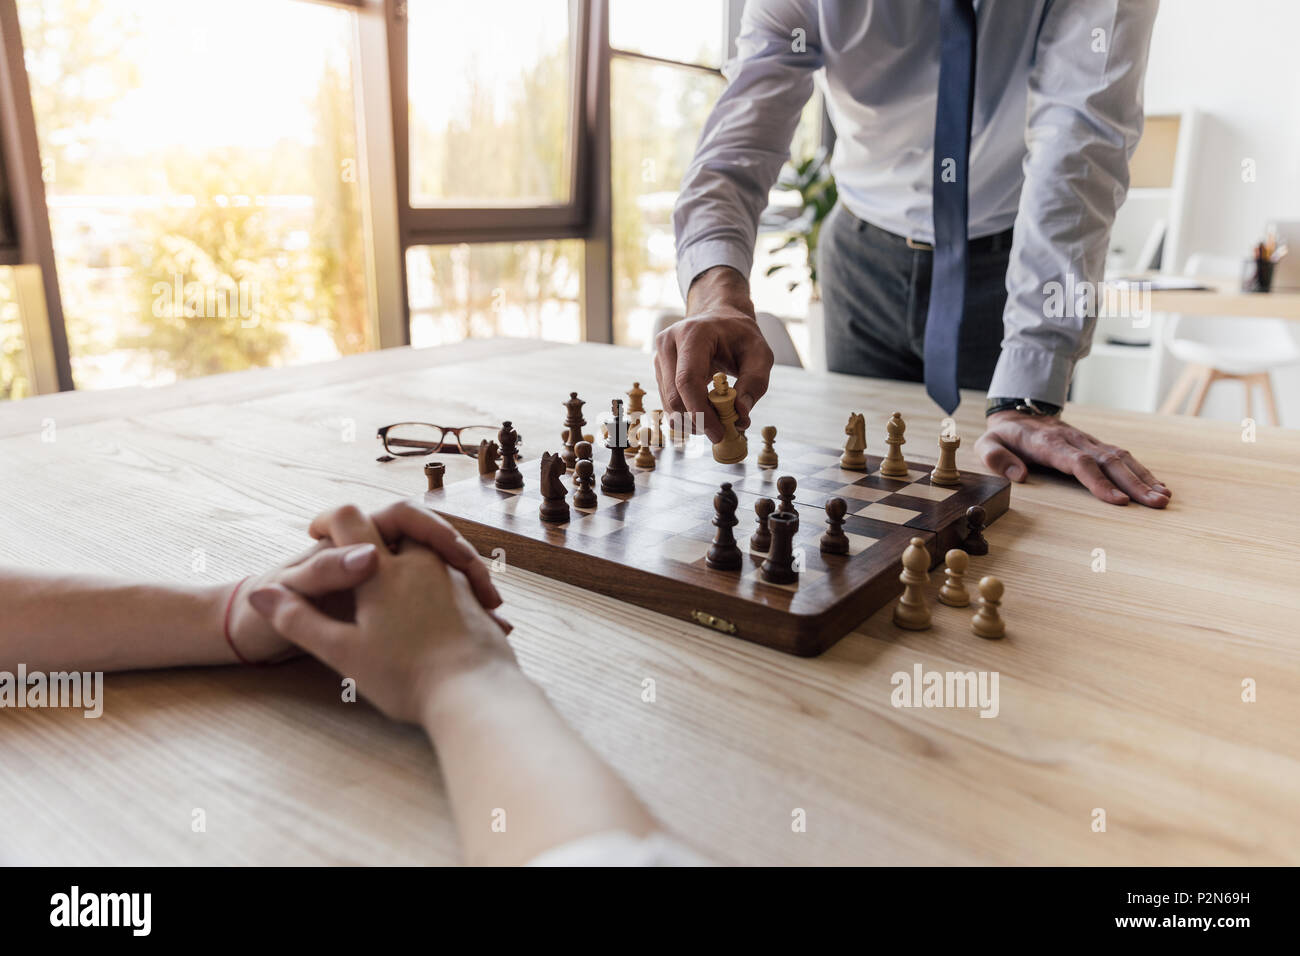 partial view of businessman playing chess with colleague in office - Stock Image